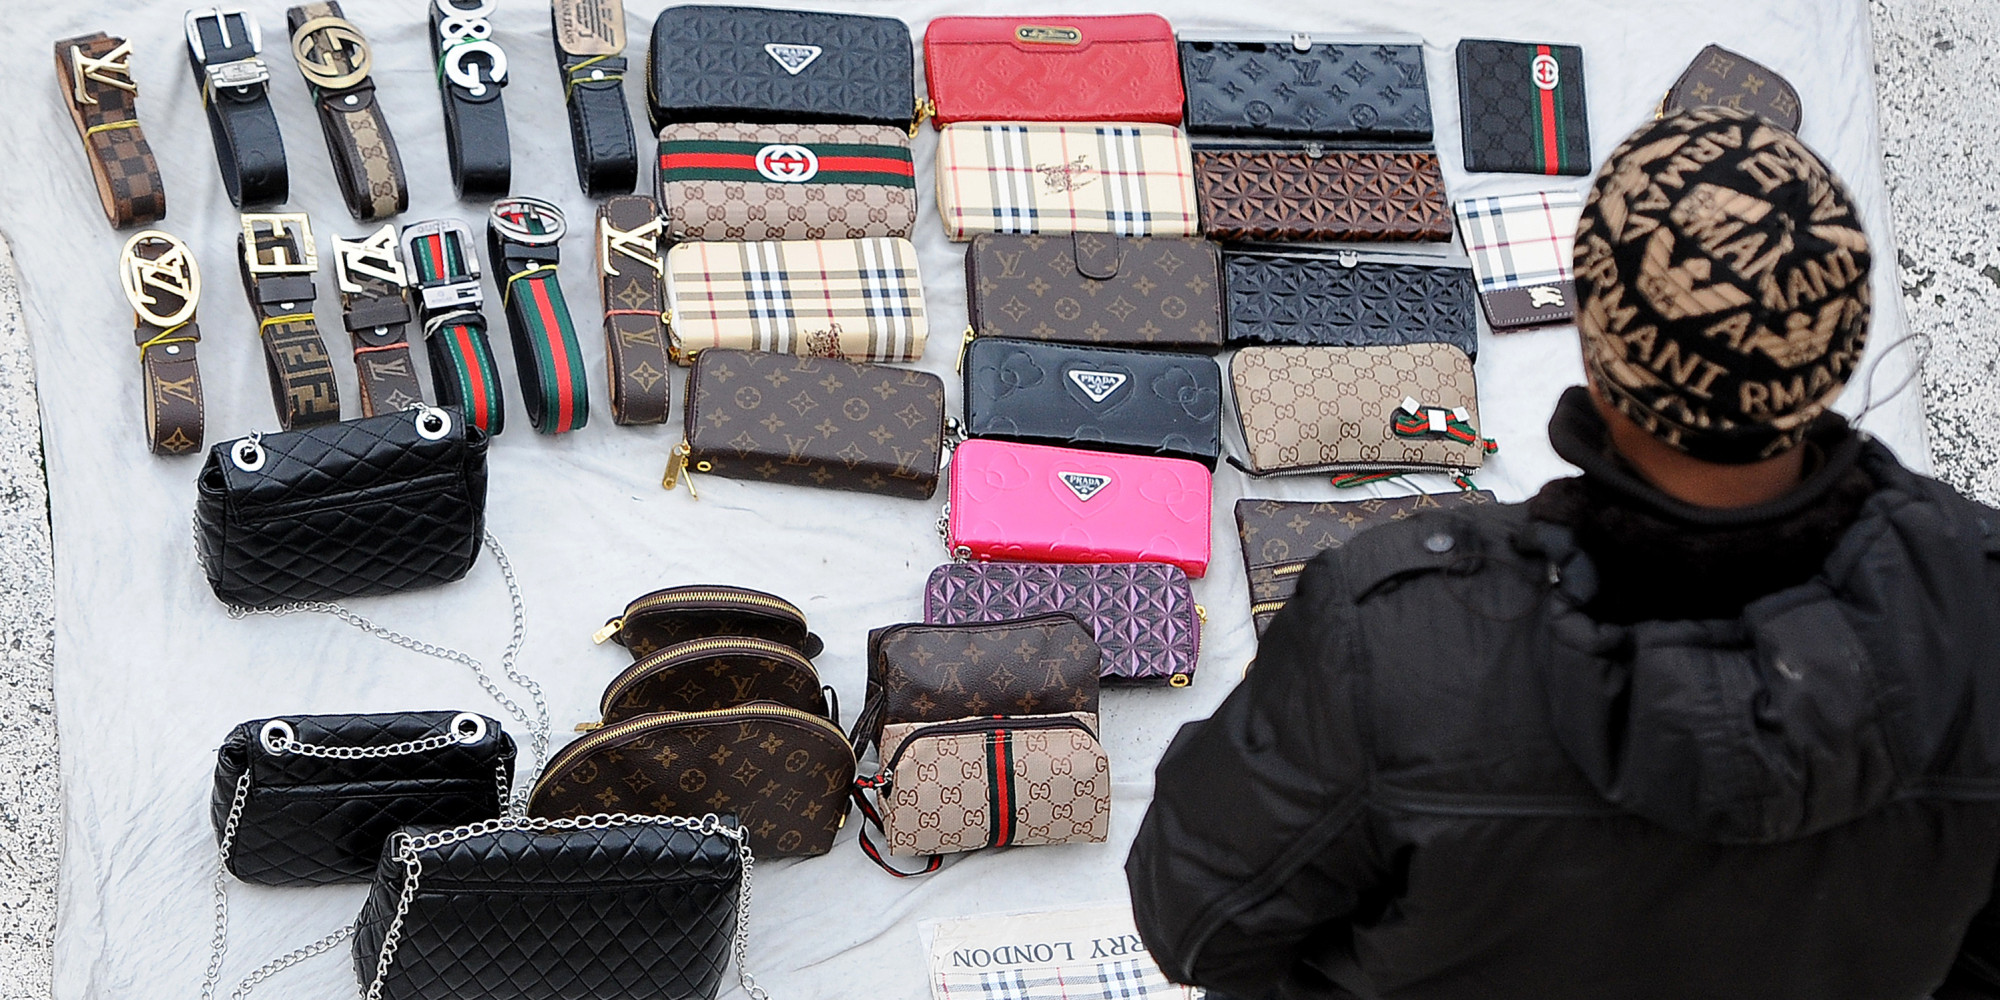 Fake Bags Clothing Less Popular As Shoppers Find Better